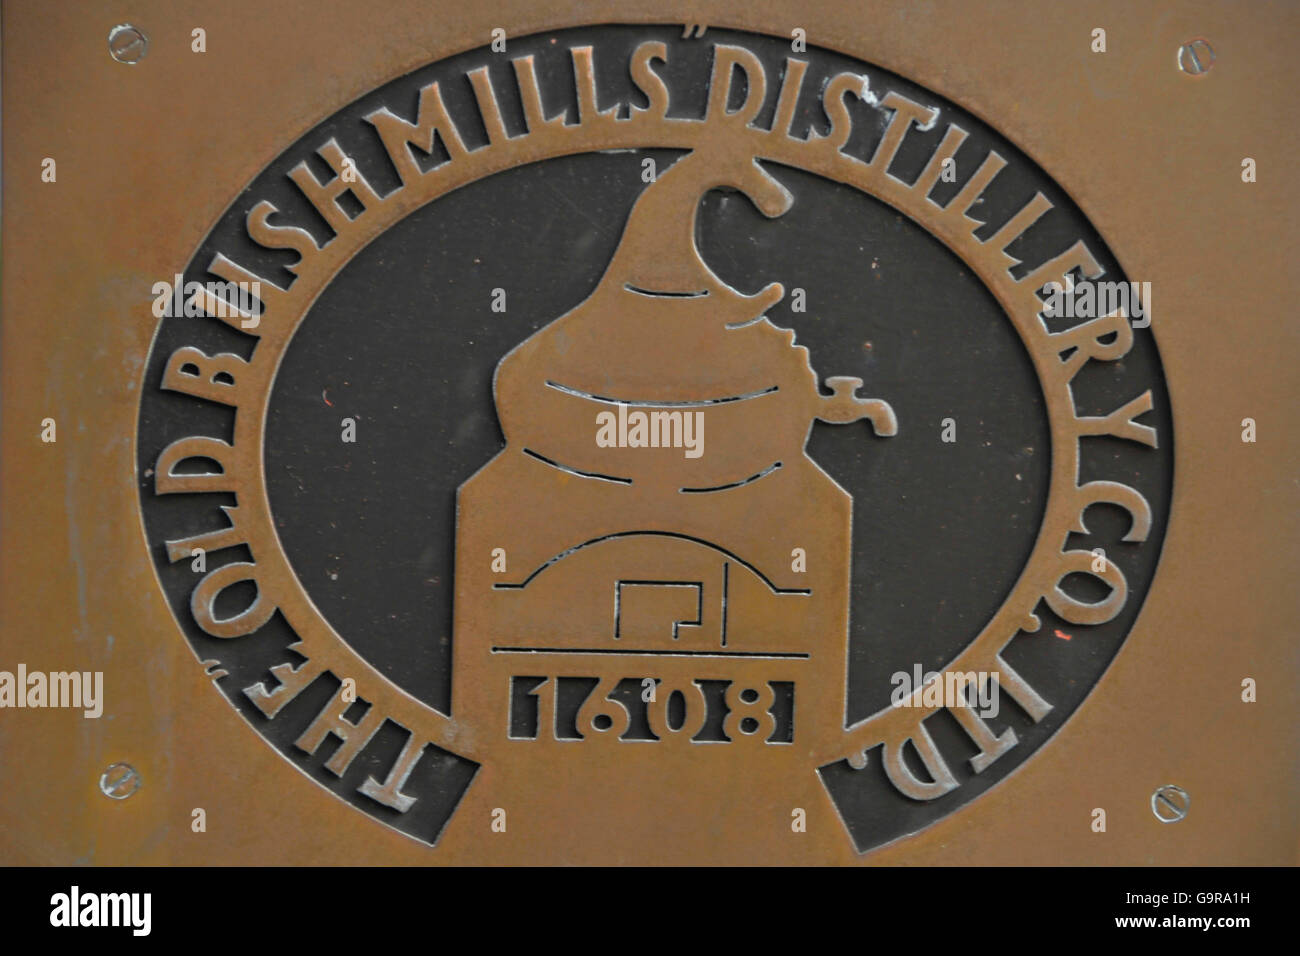 Old Bushmills Distillery, Bushmills, County Antrim, Northern Ireland - Stock Image